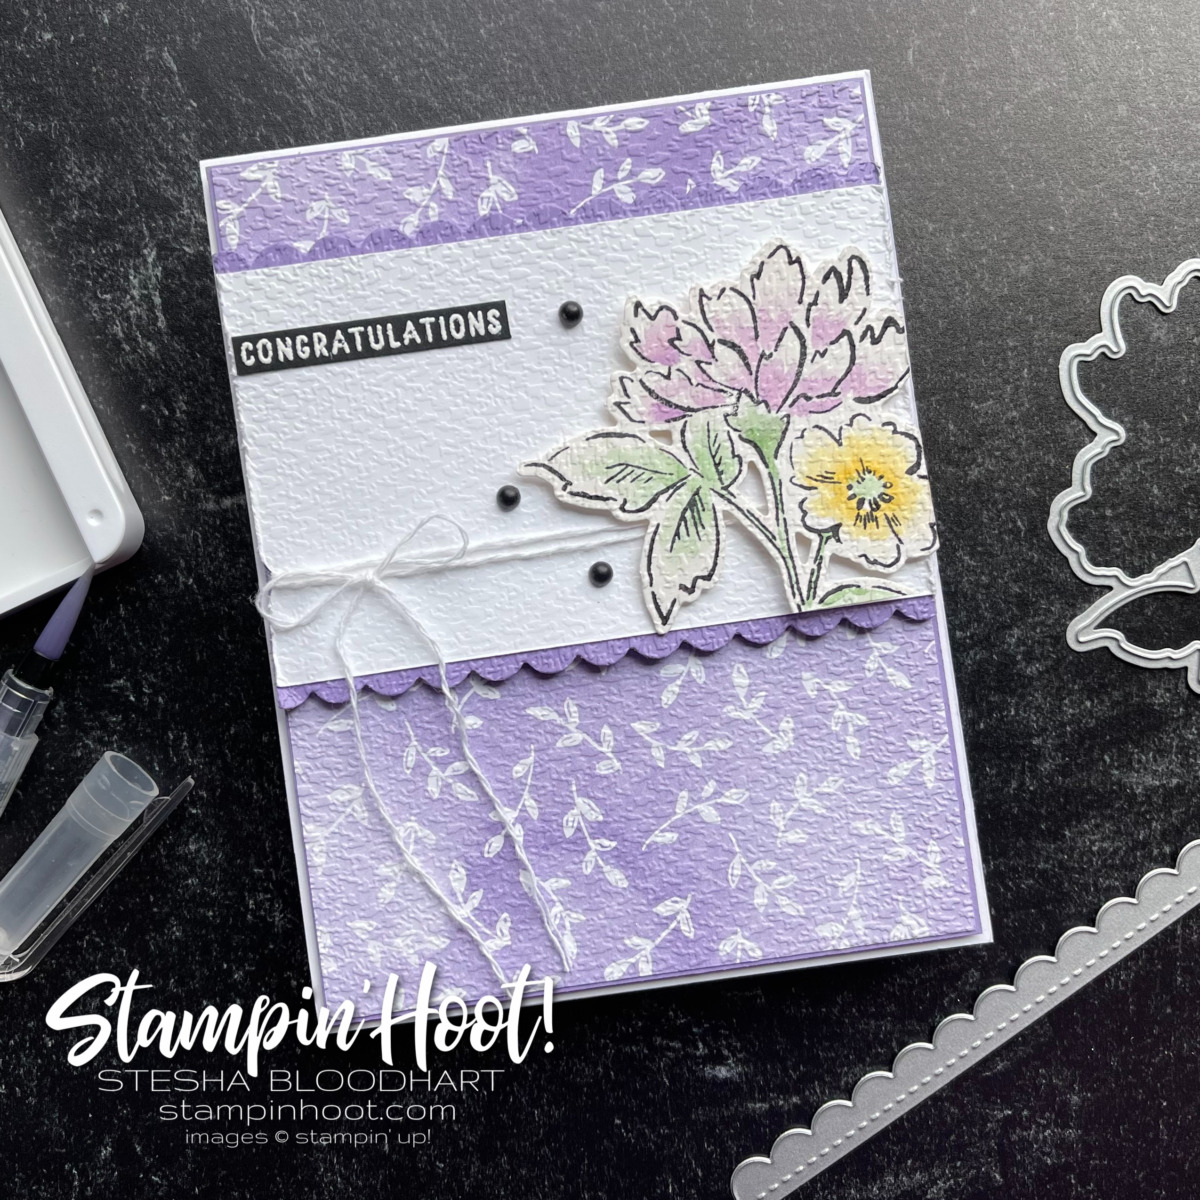 Congratulations card using the Hand-Penned Suite Card by Stesha Bloodhart, Stampin' Hoot!